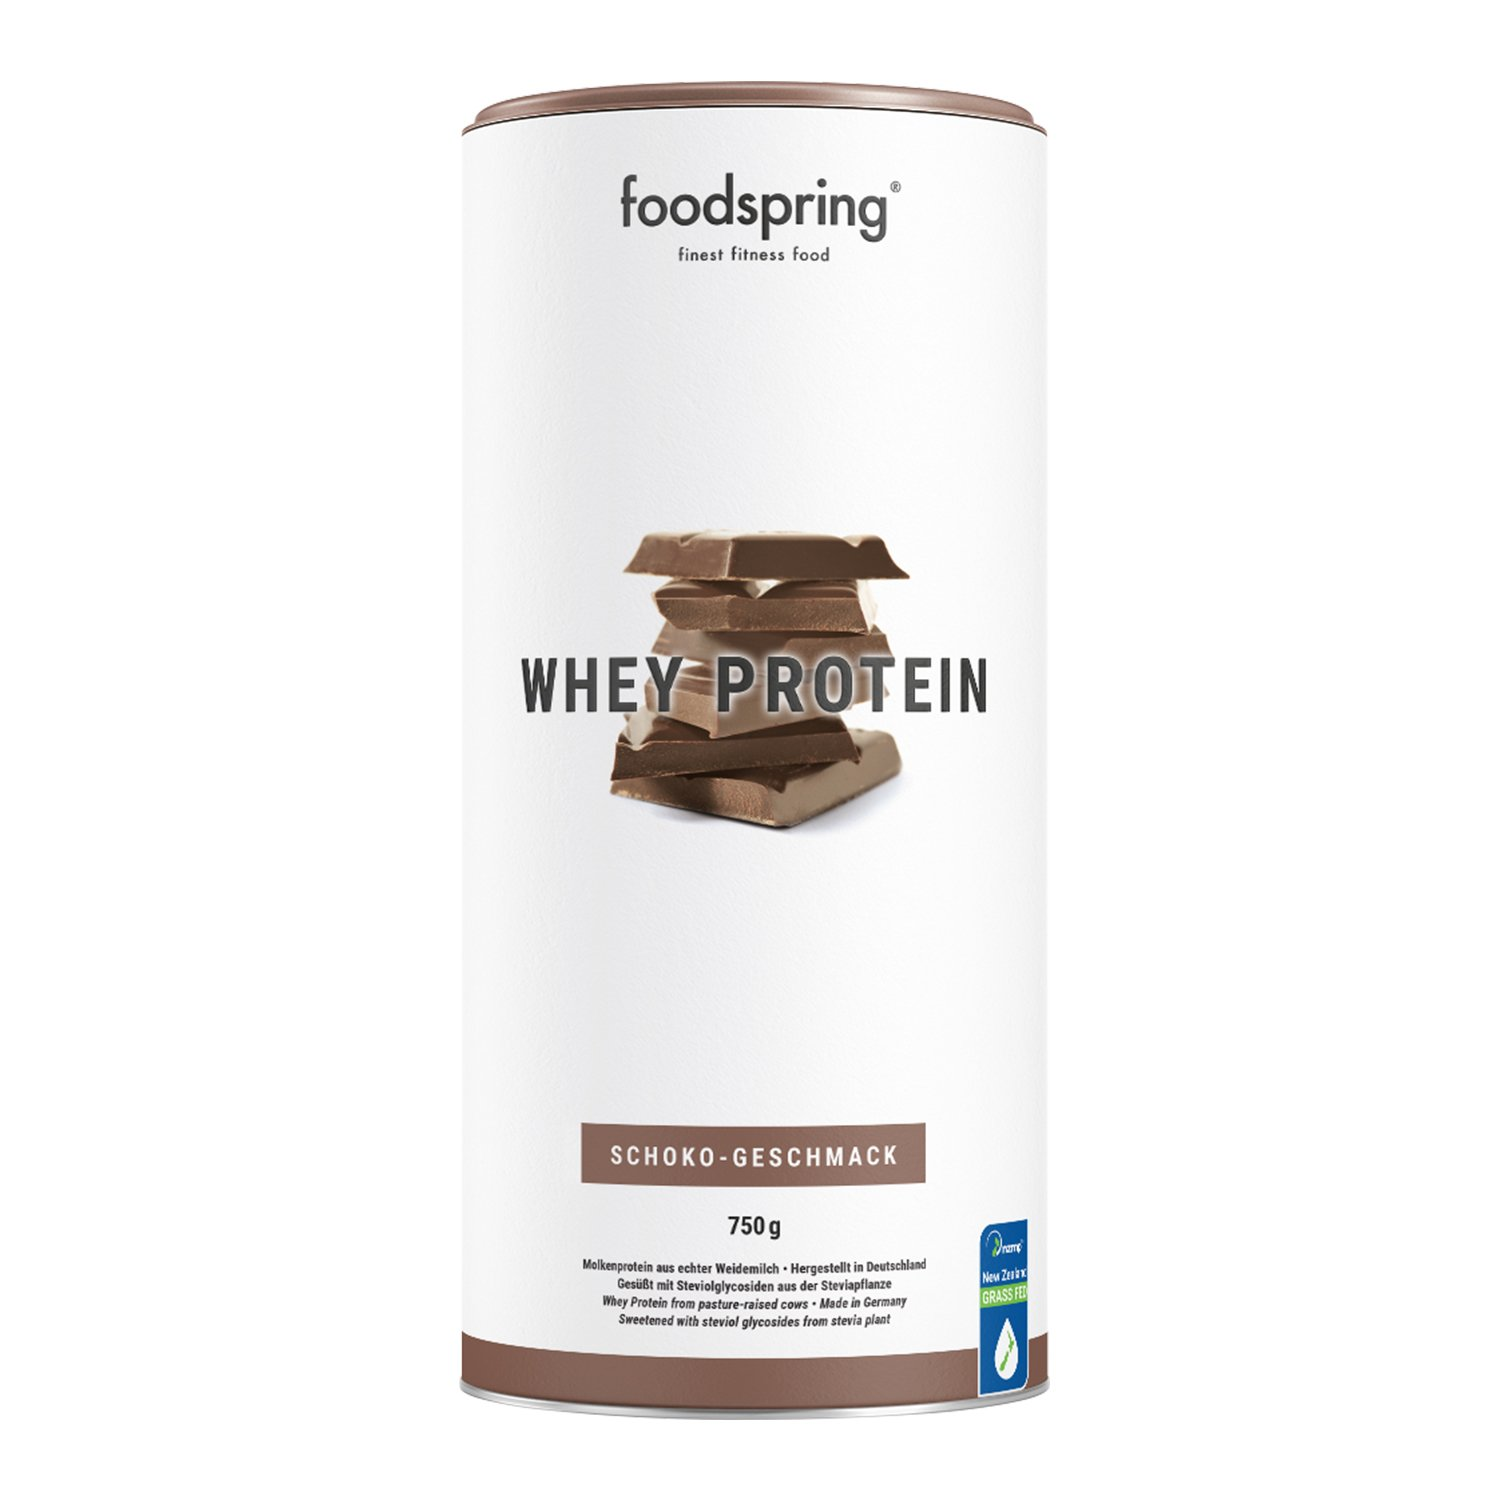 foodspring Whey Protein Powder, Chocolate, 750g, Powdered Formula with a high Protein Content for Stronger Muscles, Made from Premium Grass-fed Milk